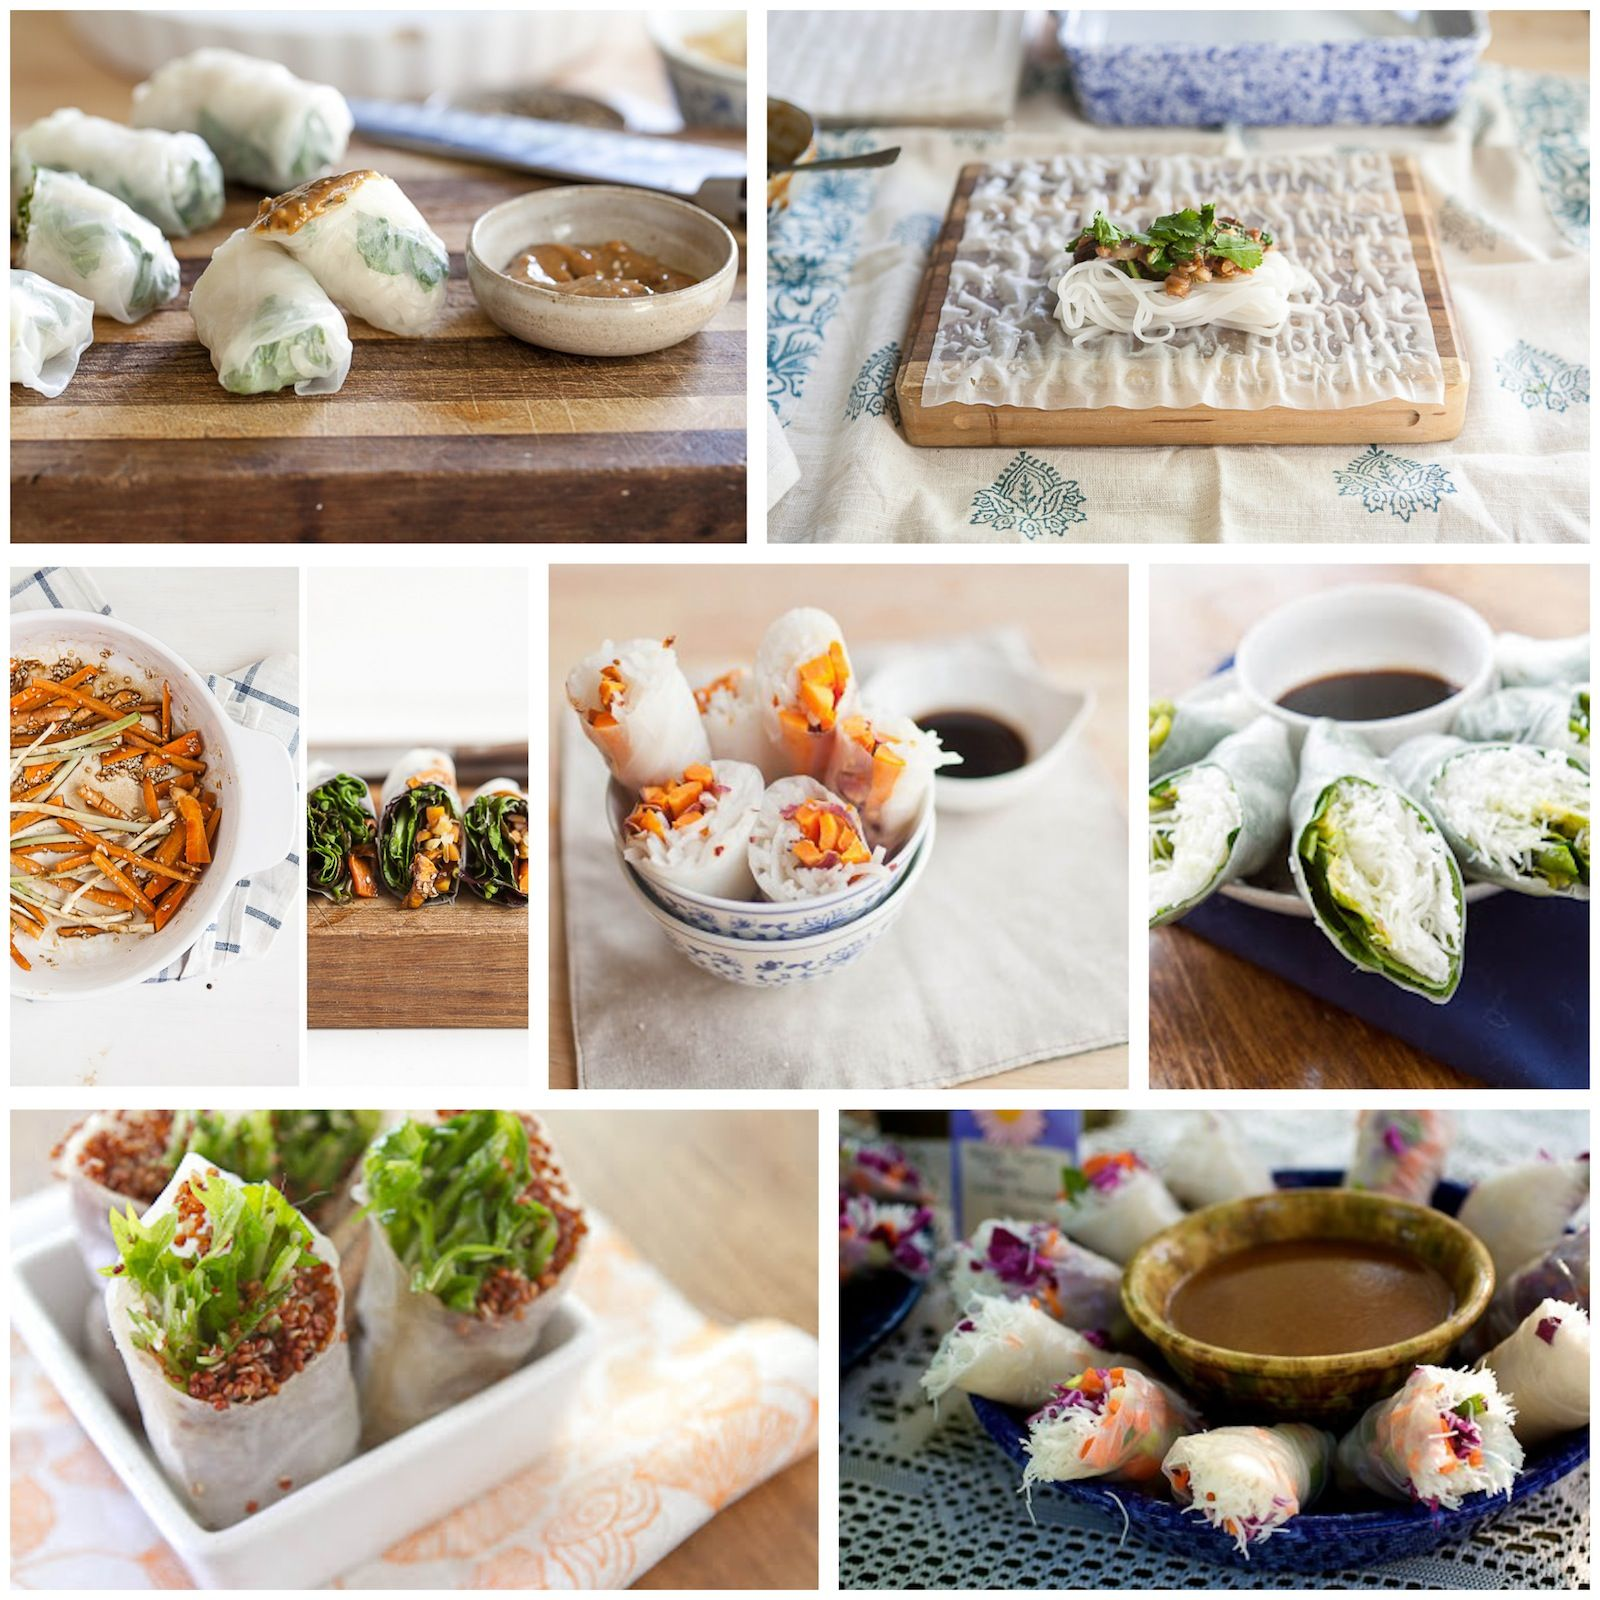 Spring Roll Inspirations